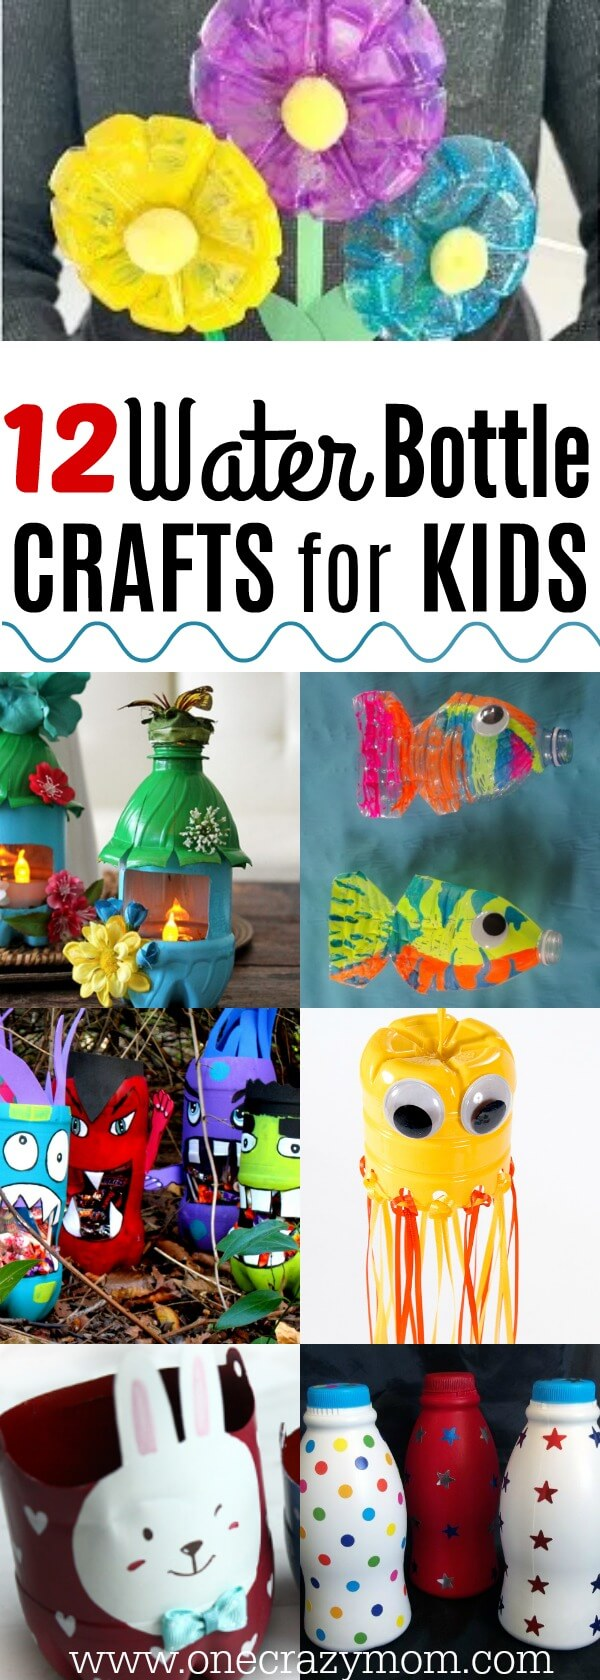 Find water bottle crafts for kids. 12 water bottle crafts for kids. They will love these plastic bottle craft ideas to keep them busy. Plastic bottle crafts are frugal and tons of fun for kids!